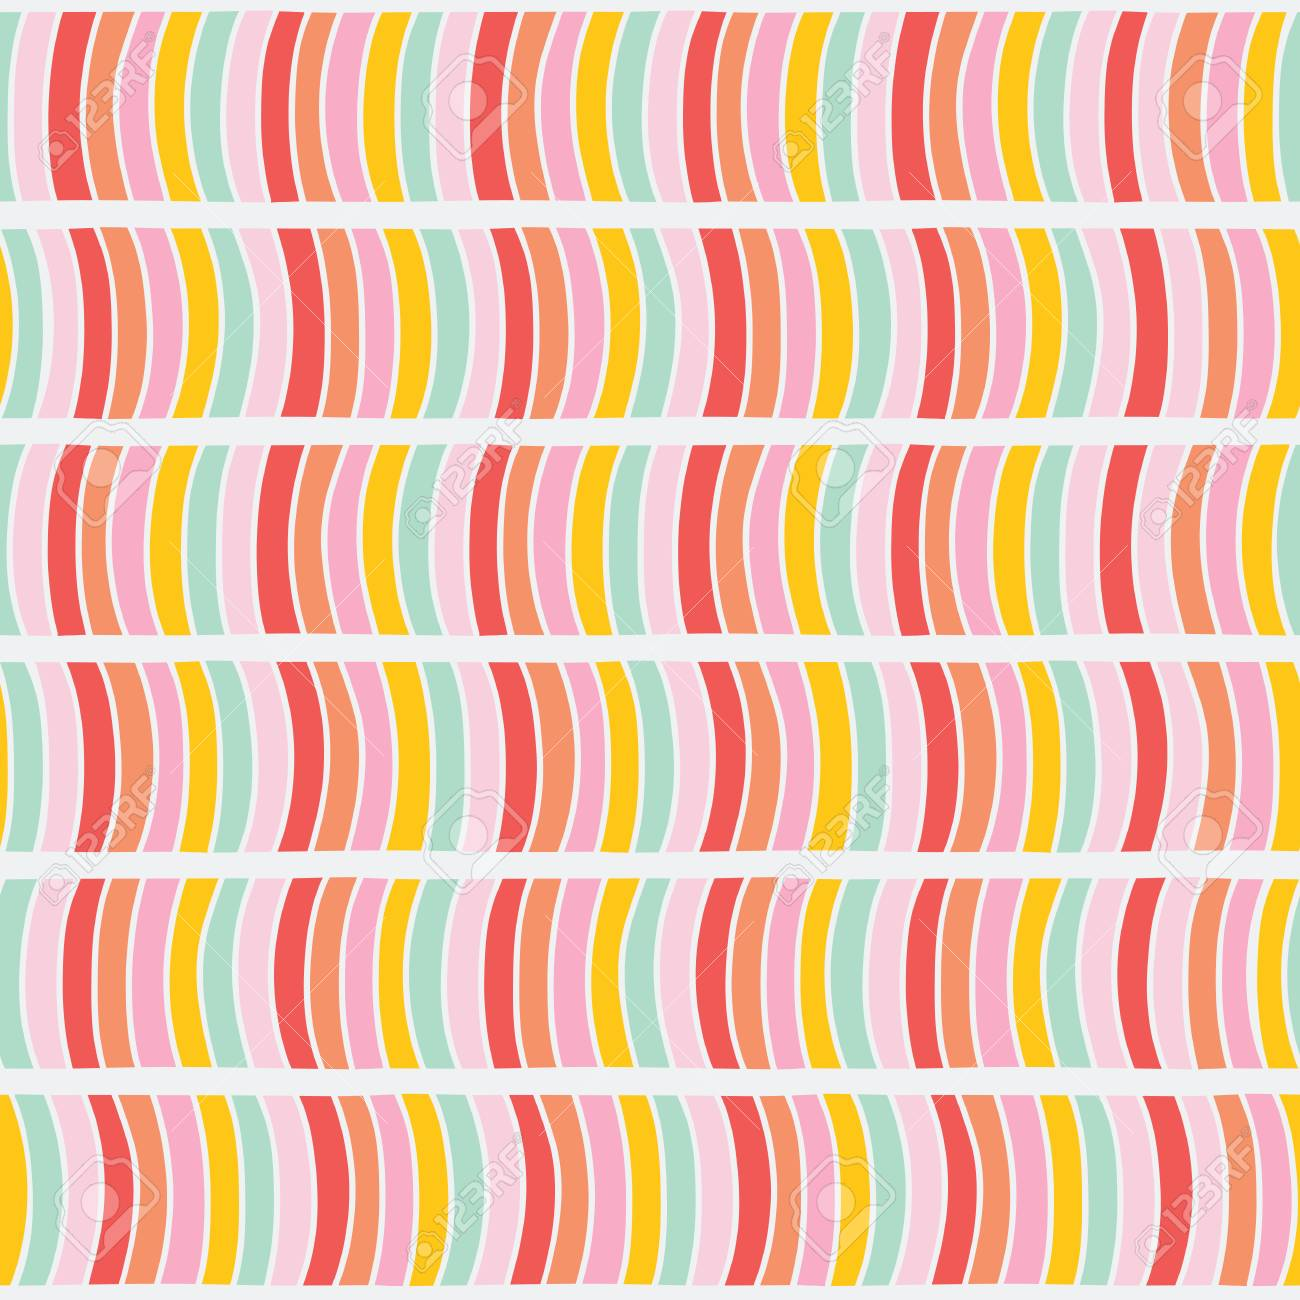 Abstract Wavy Pattern Seamless Background Bright Pastel Colors Plain Backdrop For Decoration Or